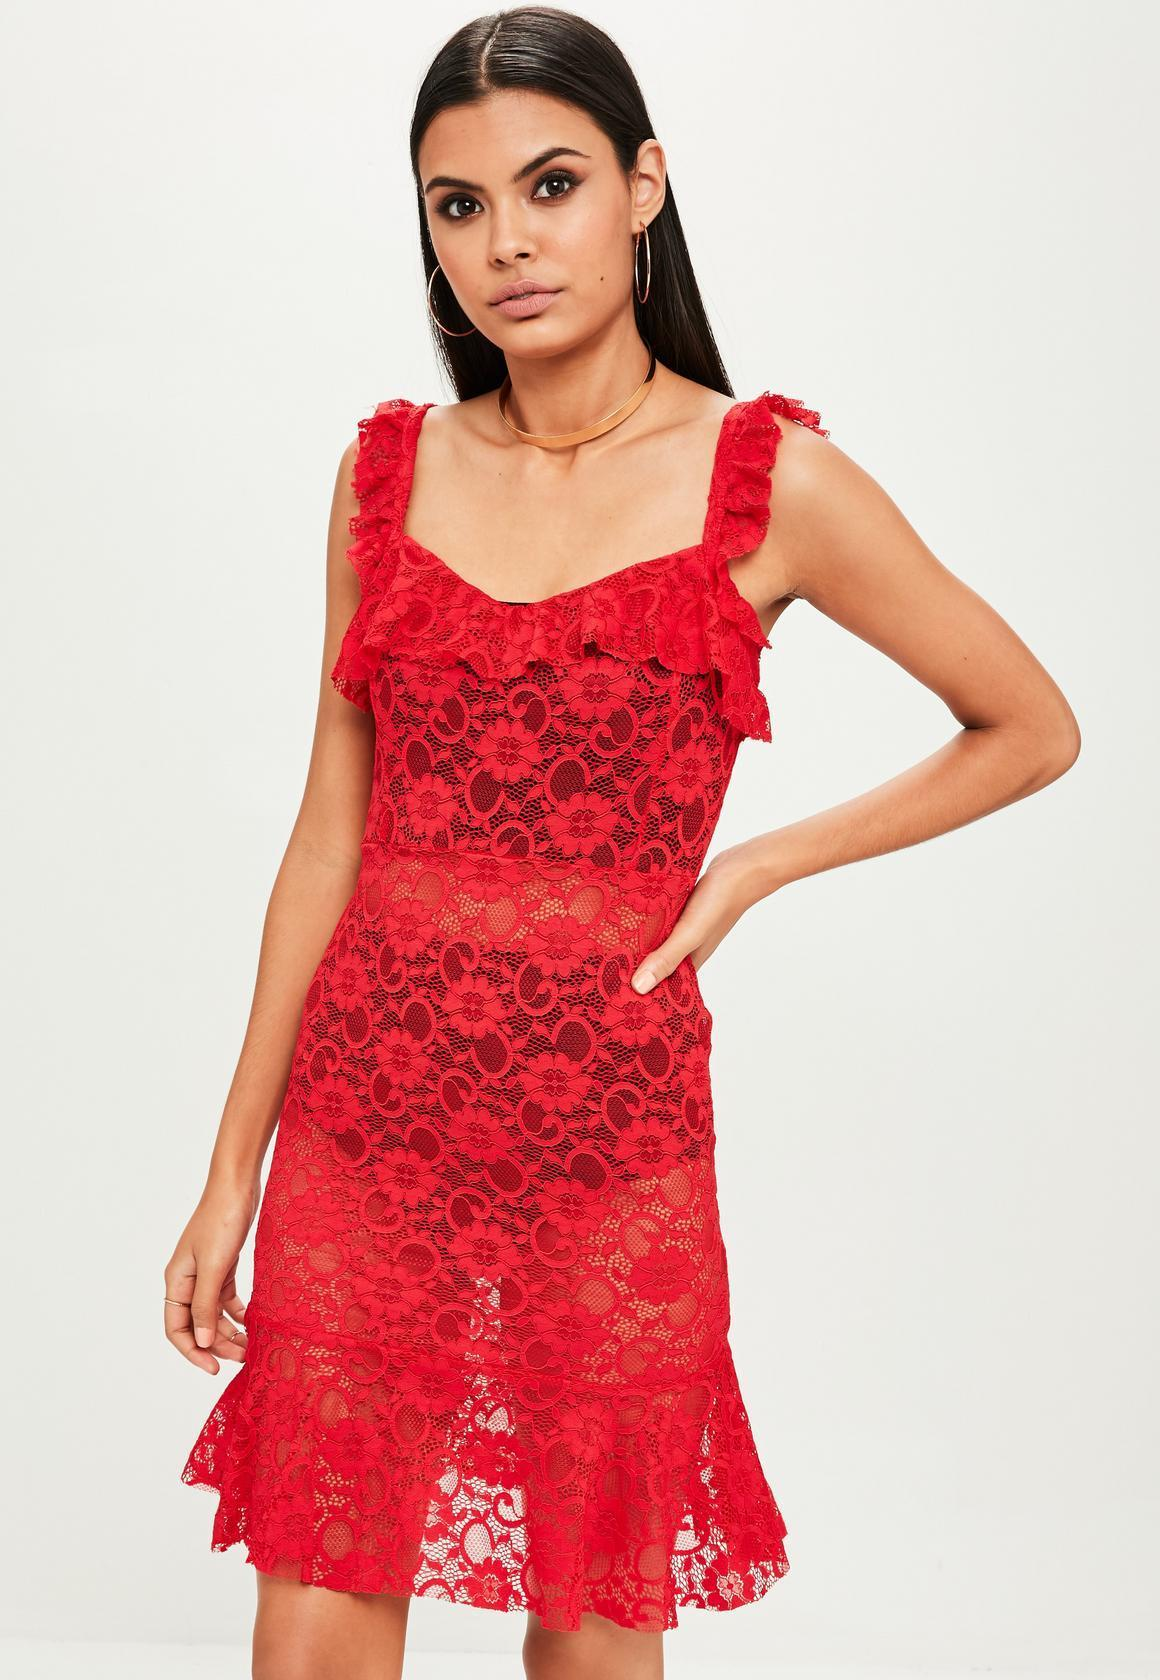 【海外限定】Missguided人気ドレス☆Red Lace Frill Ruched Mini